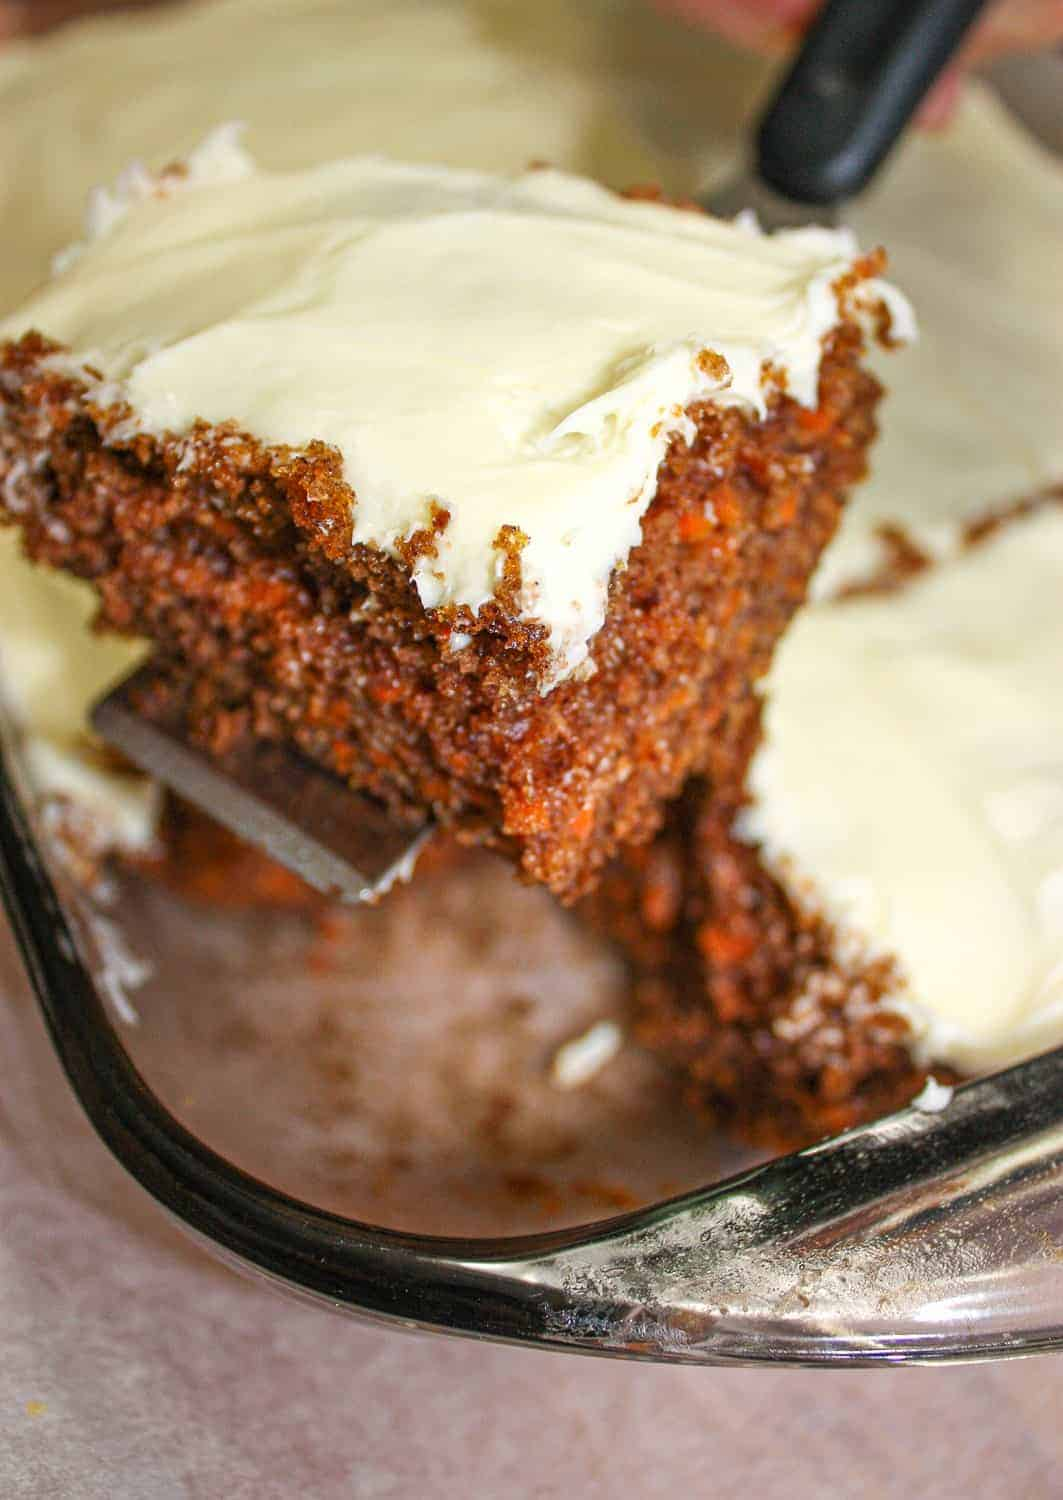 Carrot Cake is one of my all time favourites and this recipe, adapted from one my sister-in-law shared with me, will please everyone not just those that have to avoid gluten.